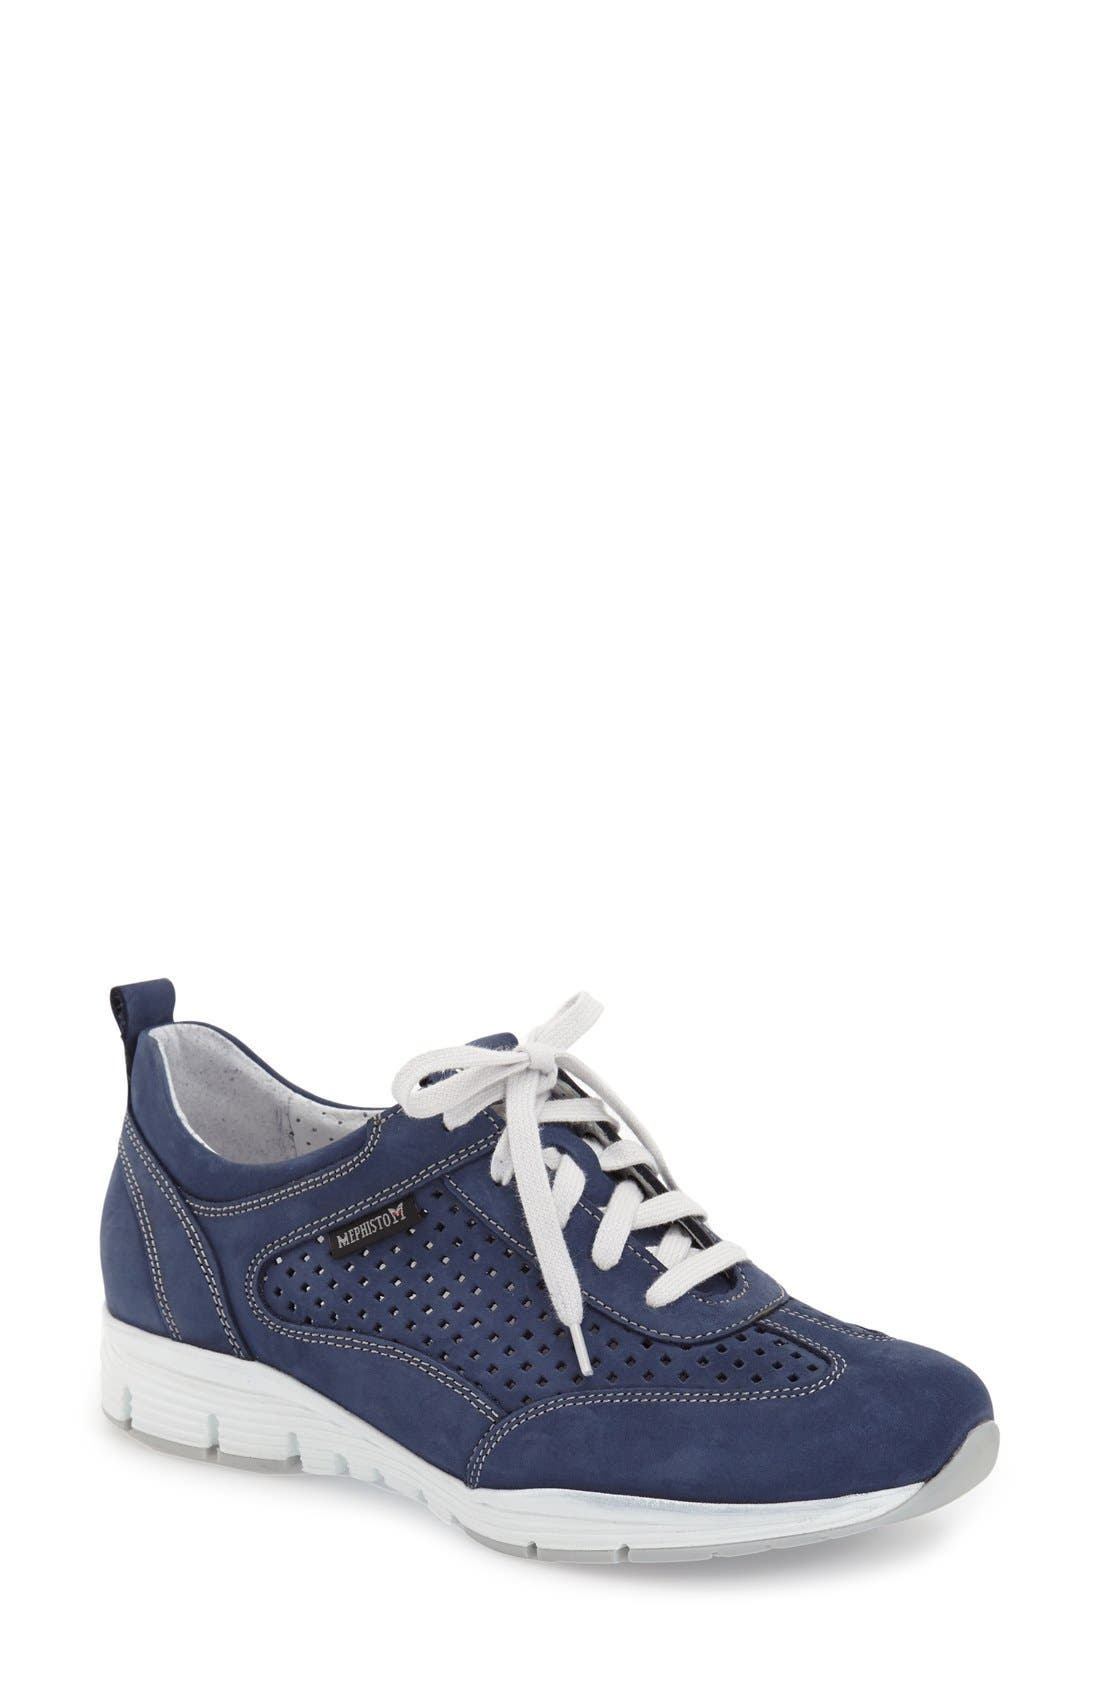 'Yoana' Soft Air Perforated Sneaker,                             Main thumbnail 1, color,                             411